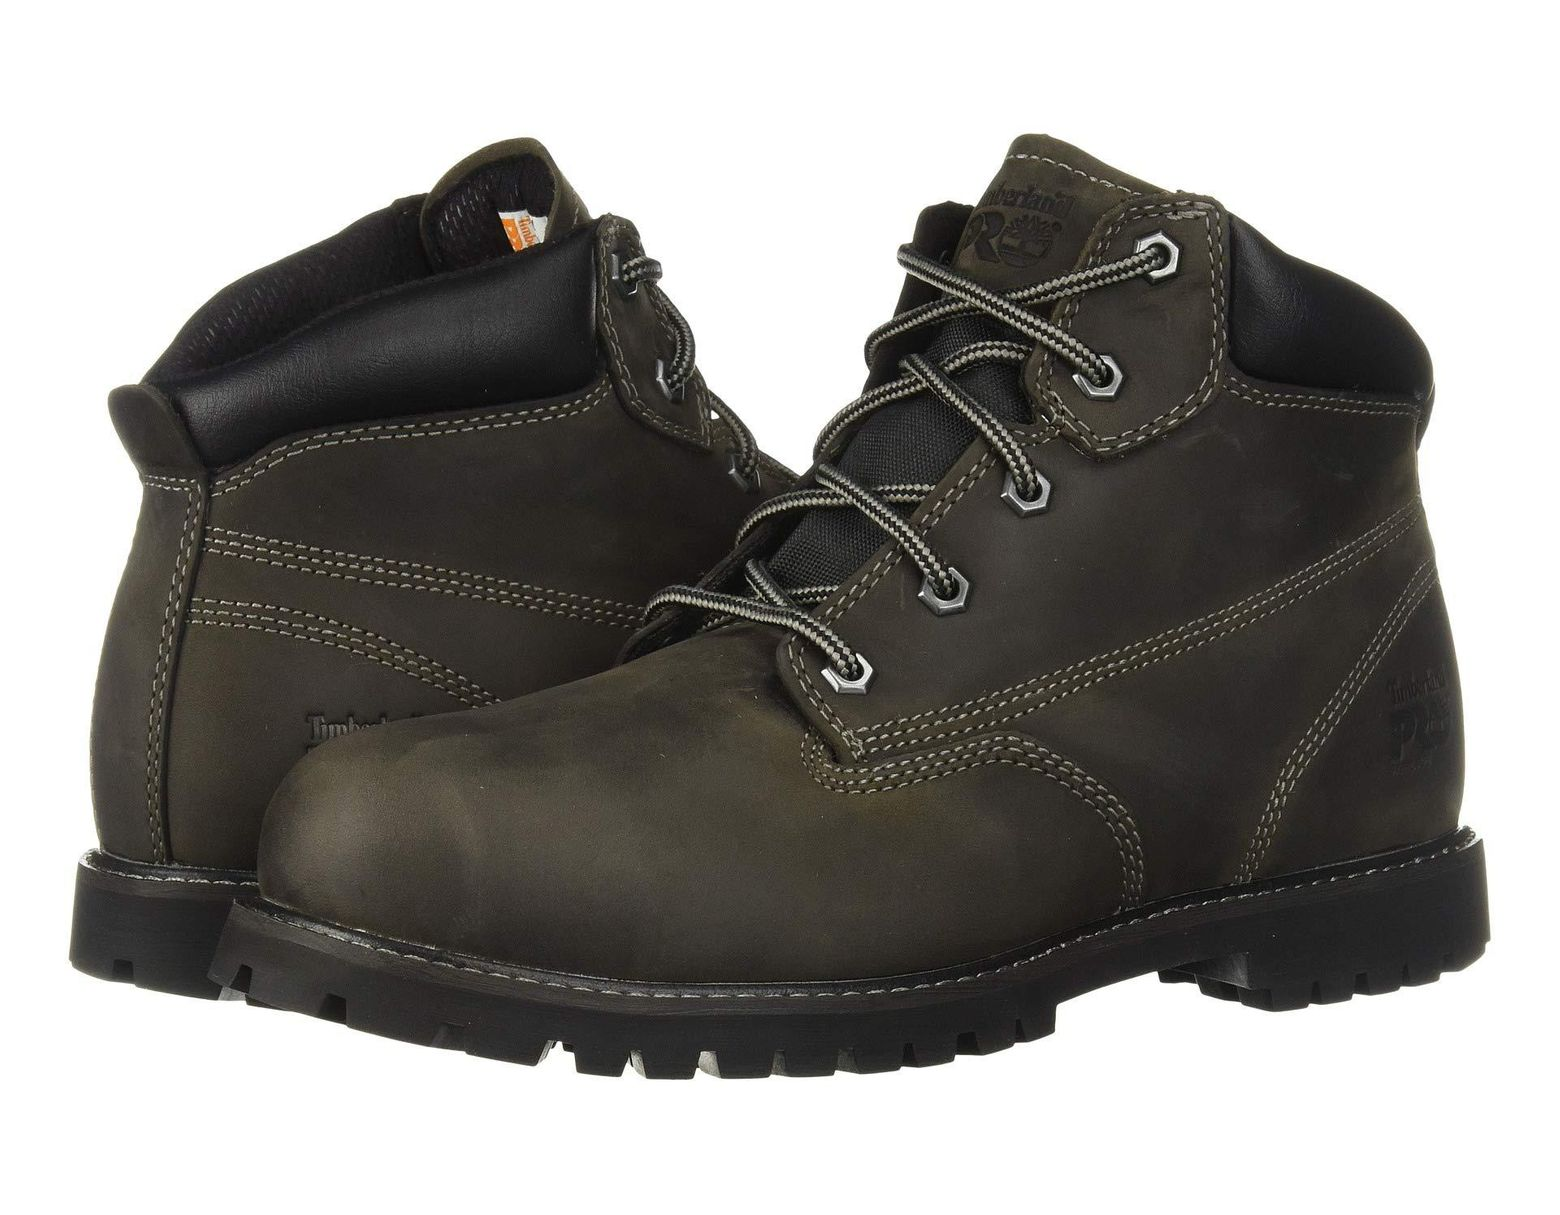 a0055331081 Timberland - Black Gritstone 6 Steel Safety Toe for Men - Lyst